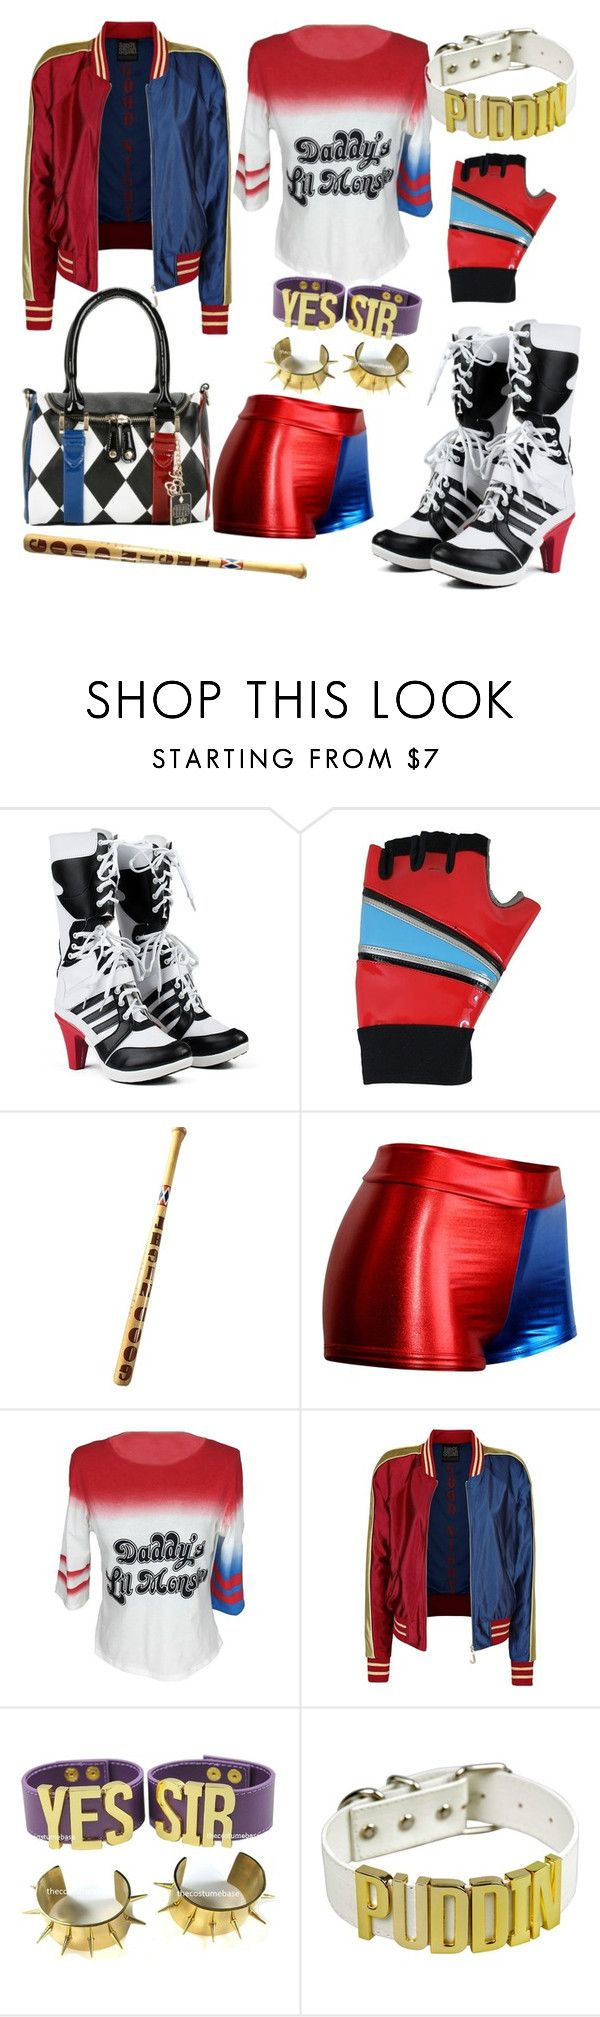 """""""Harley Quinn(HARLEEN QUINZEL)Costume"""" by nickollalopez ❤ liked on Polyvore featuring COS"""